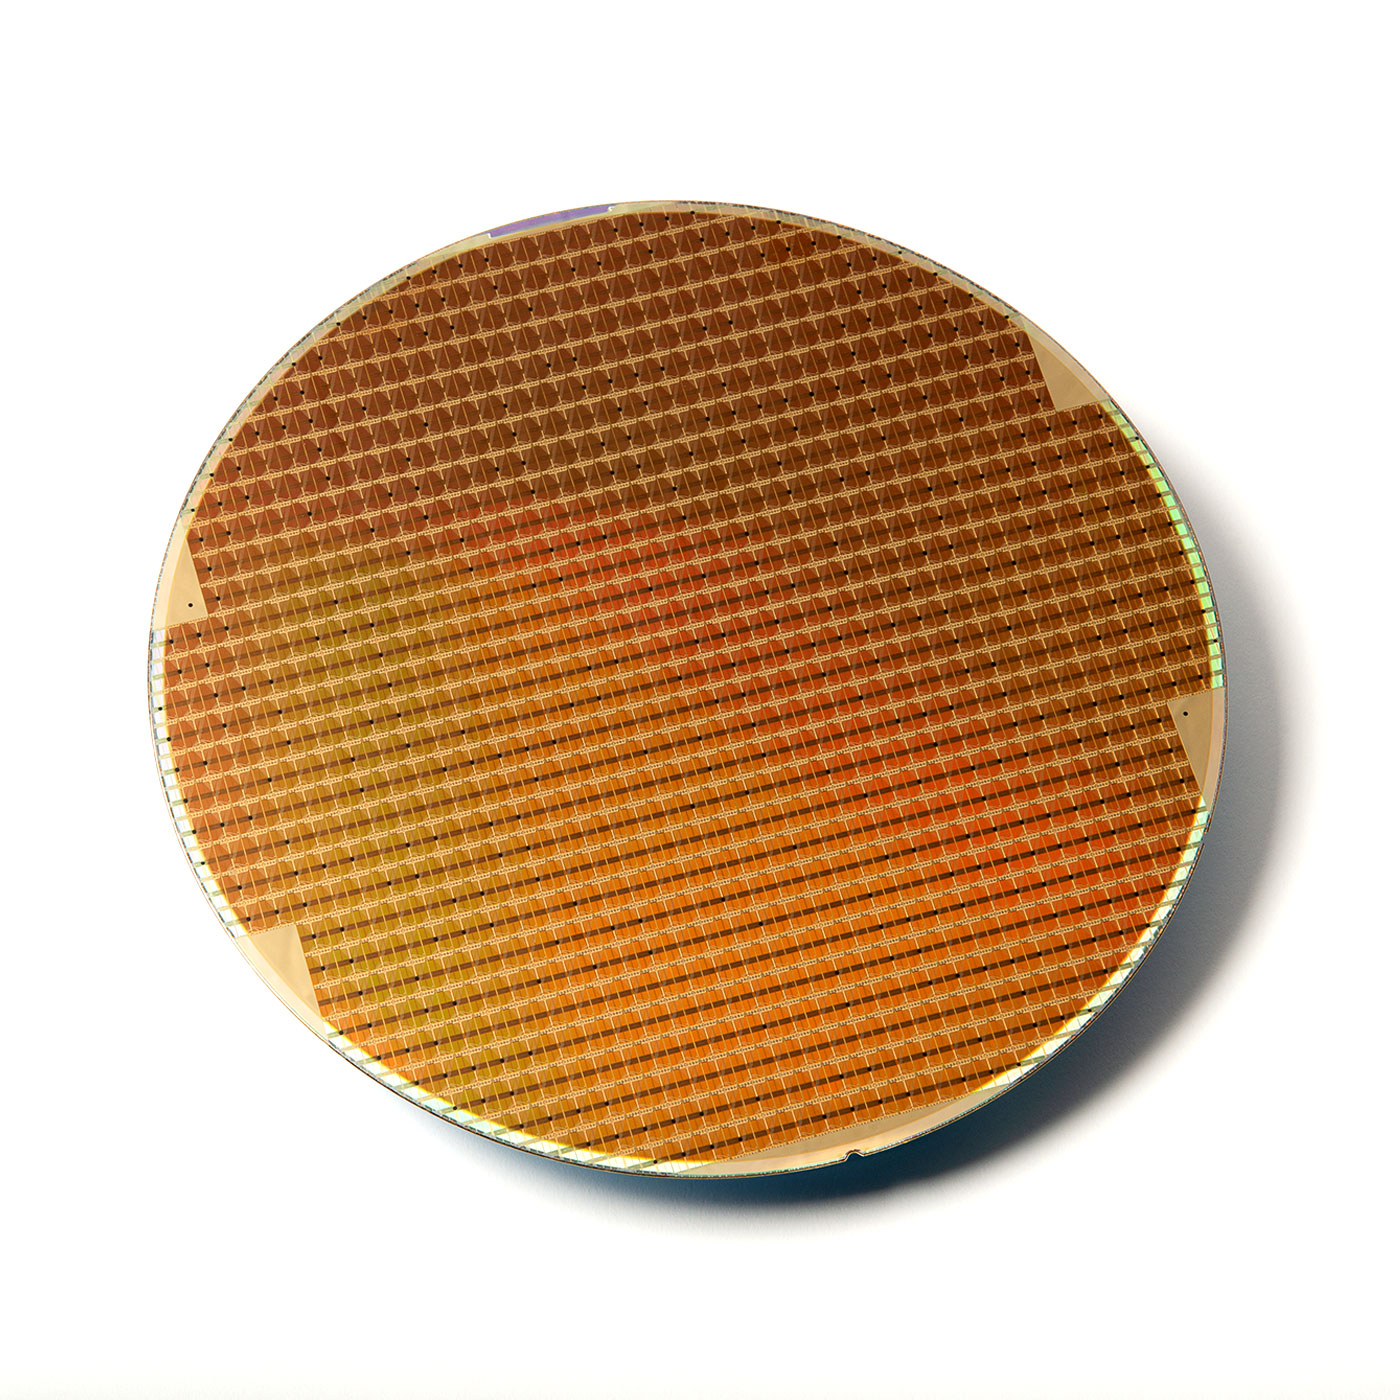 Monolayer graphene on <u>your</u> up to 8-inch (200 mm) diameter wafer or custom substrate